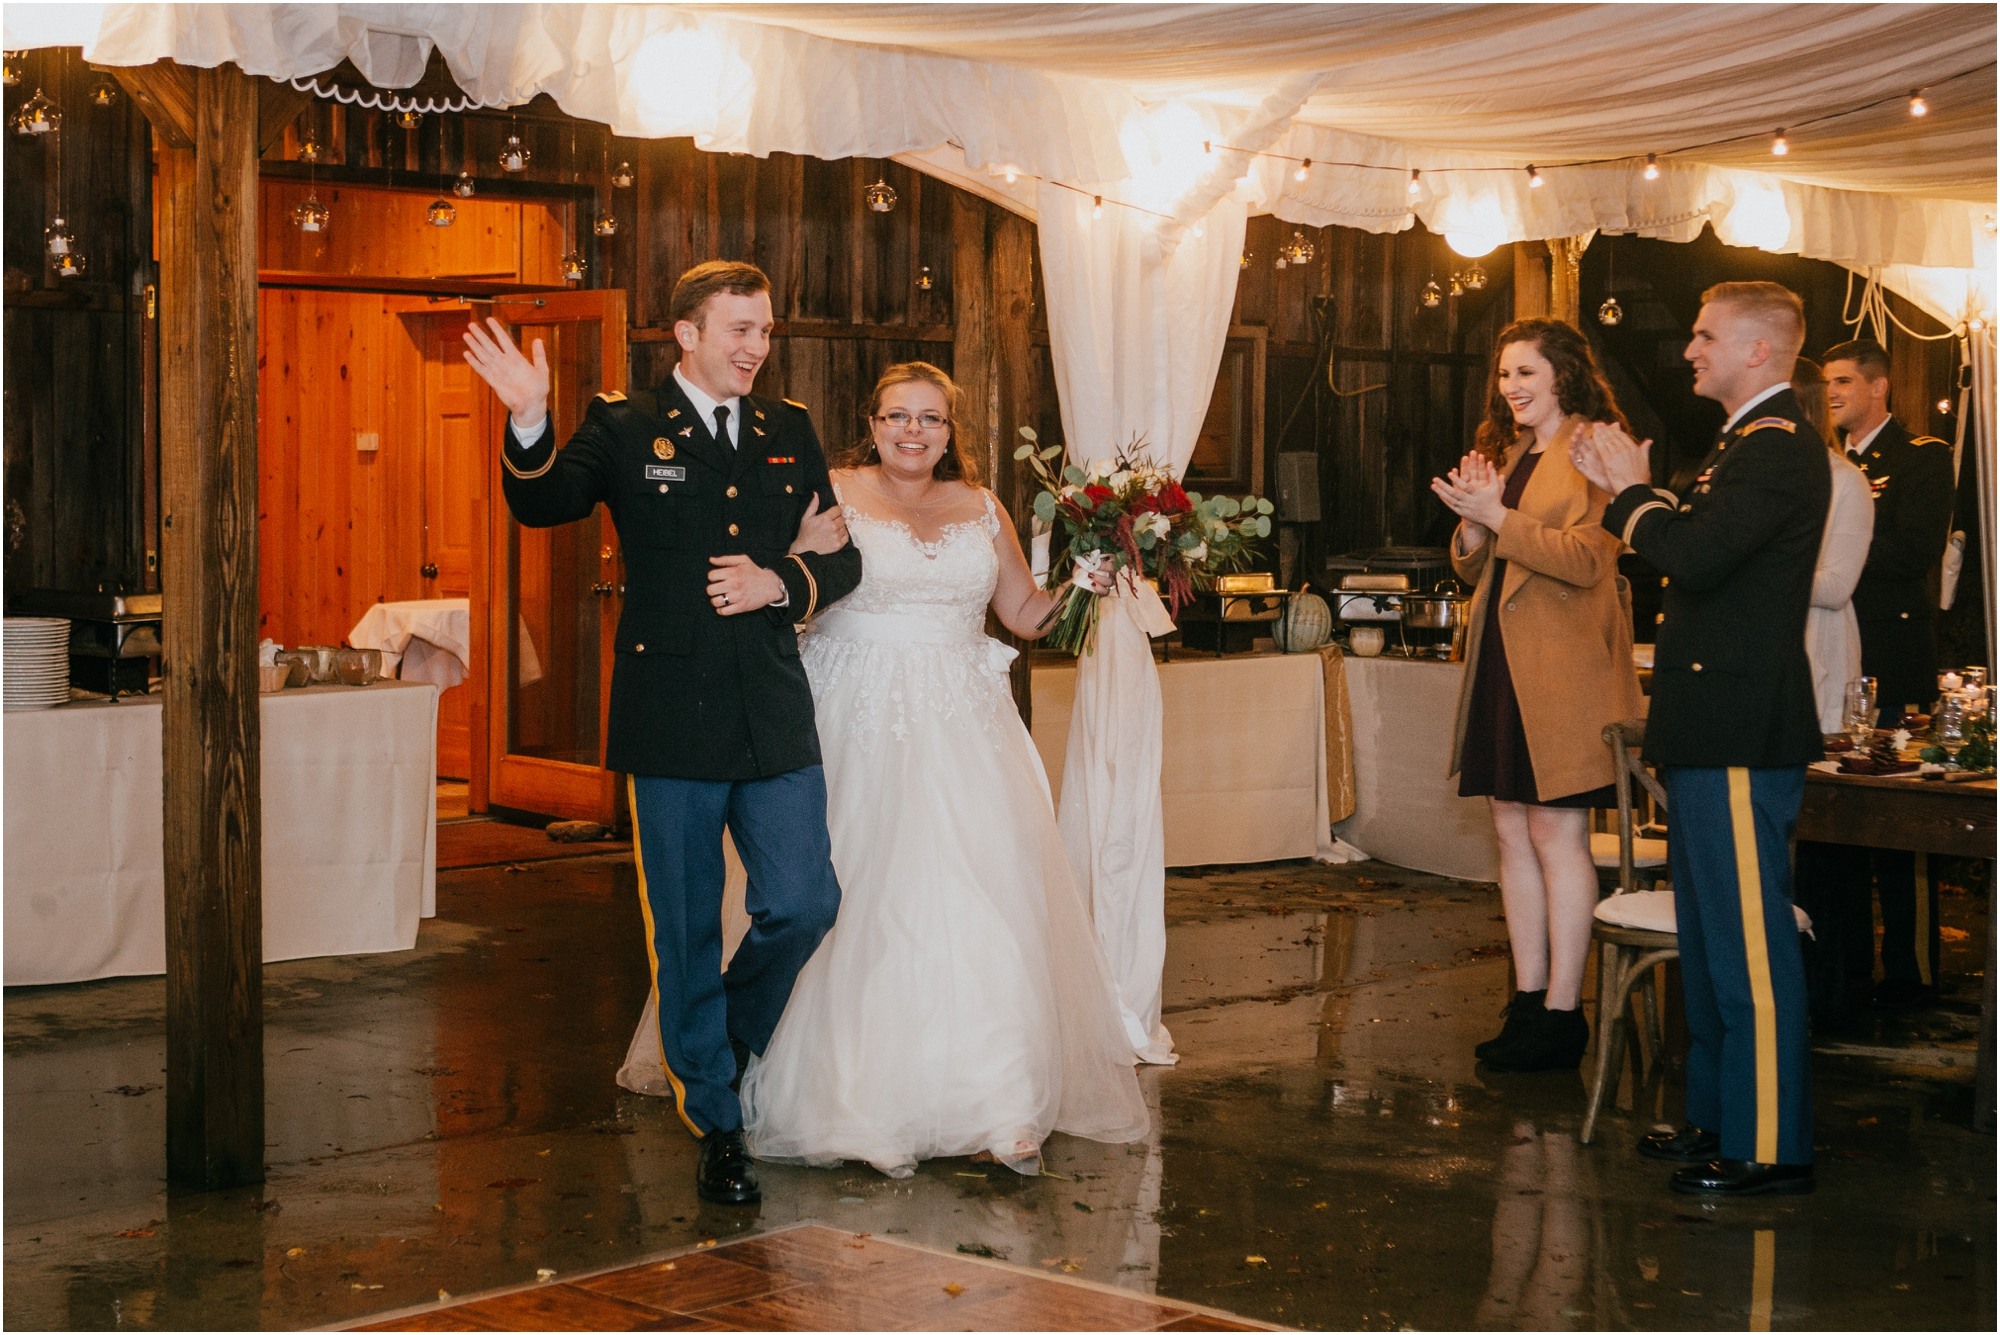 Sugar-Hollow-Retreat-Butler-Elizabethton-Tennessee-Rustic-Rainy-Wedding-Adventurous-Couple_0133.jpg